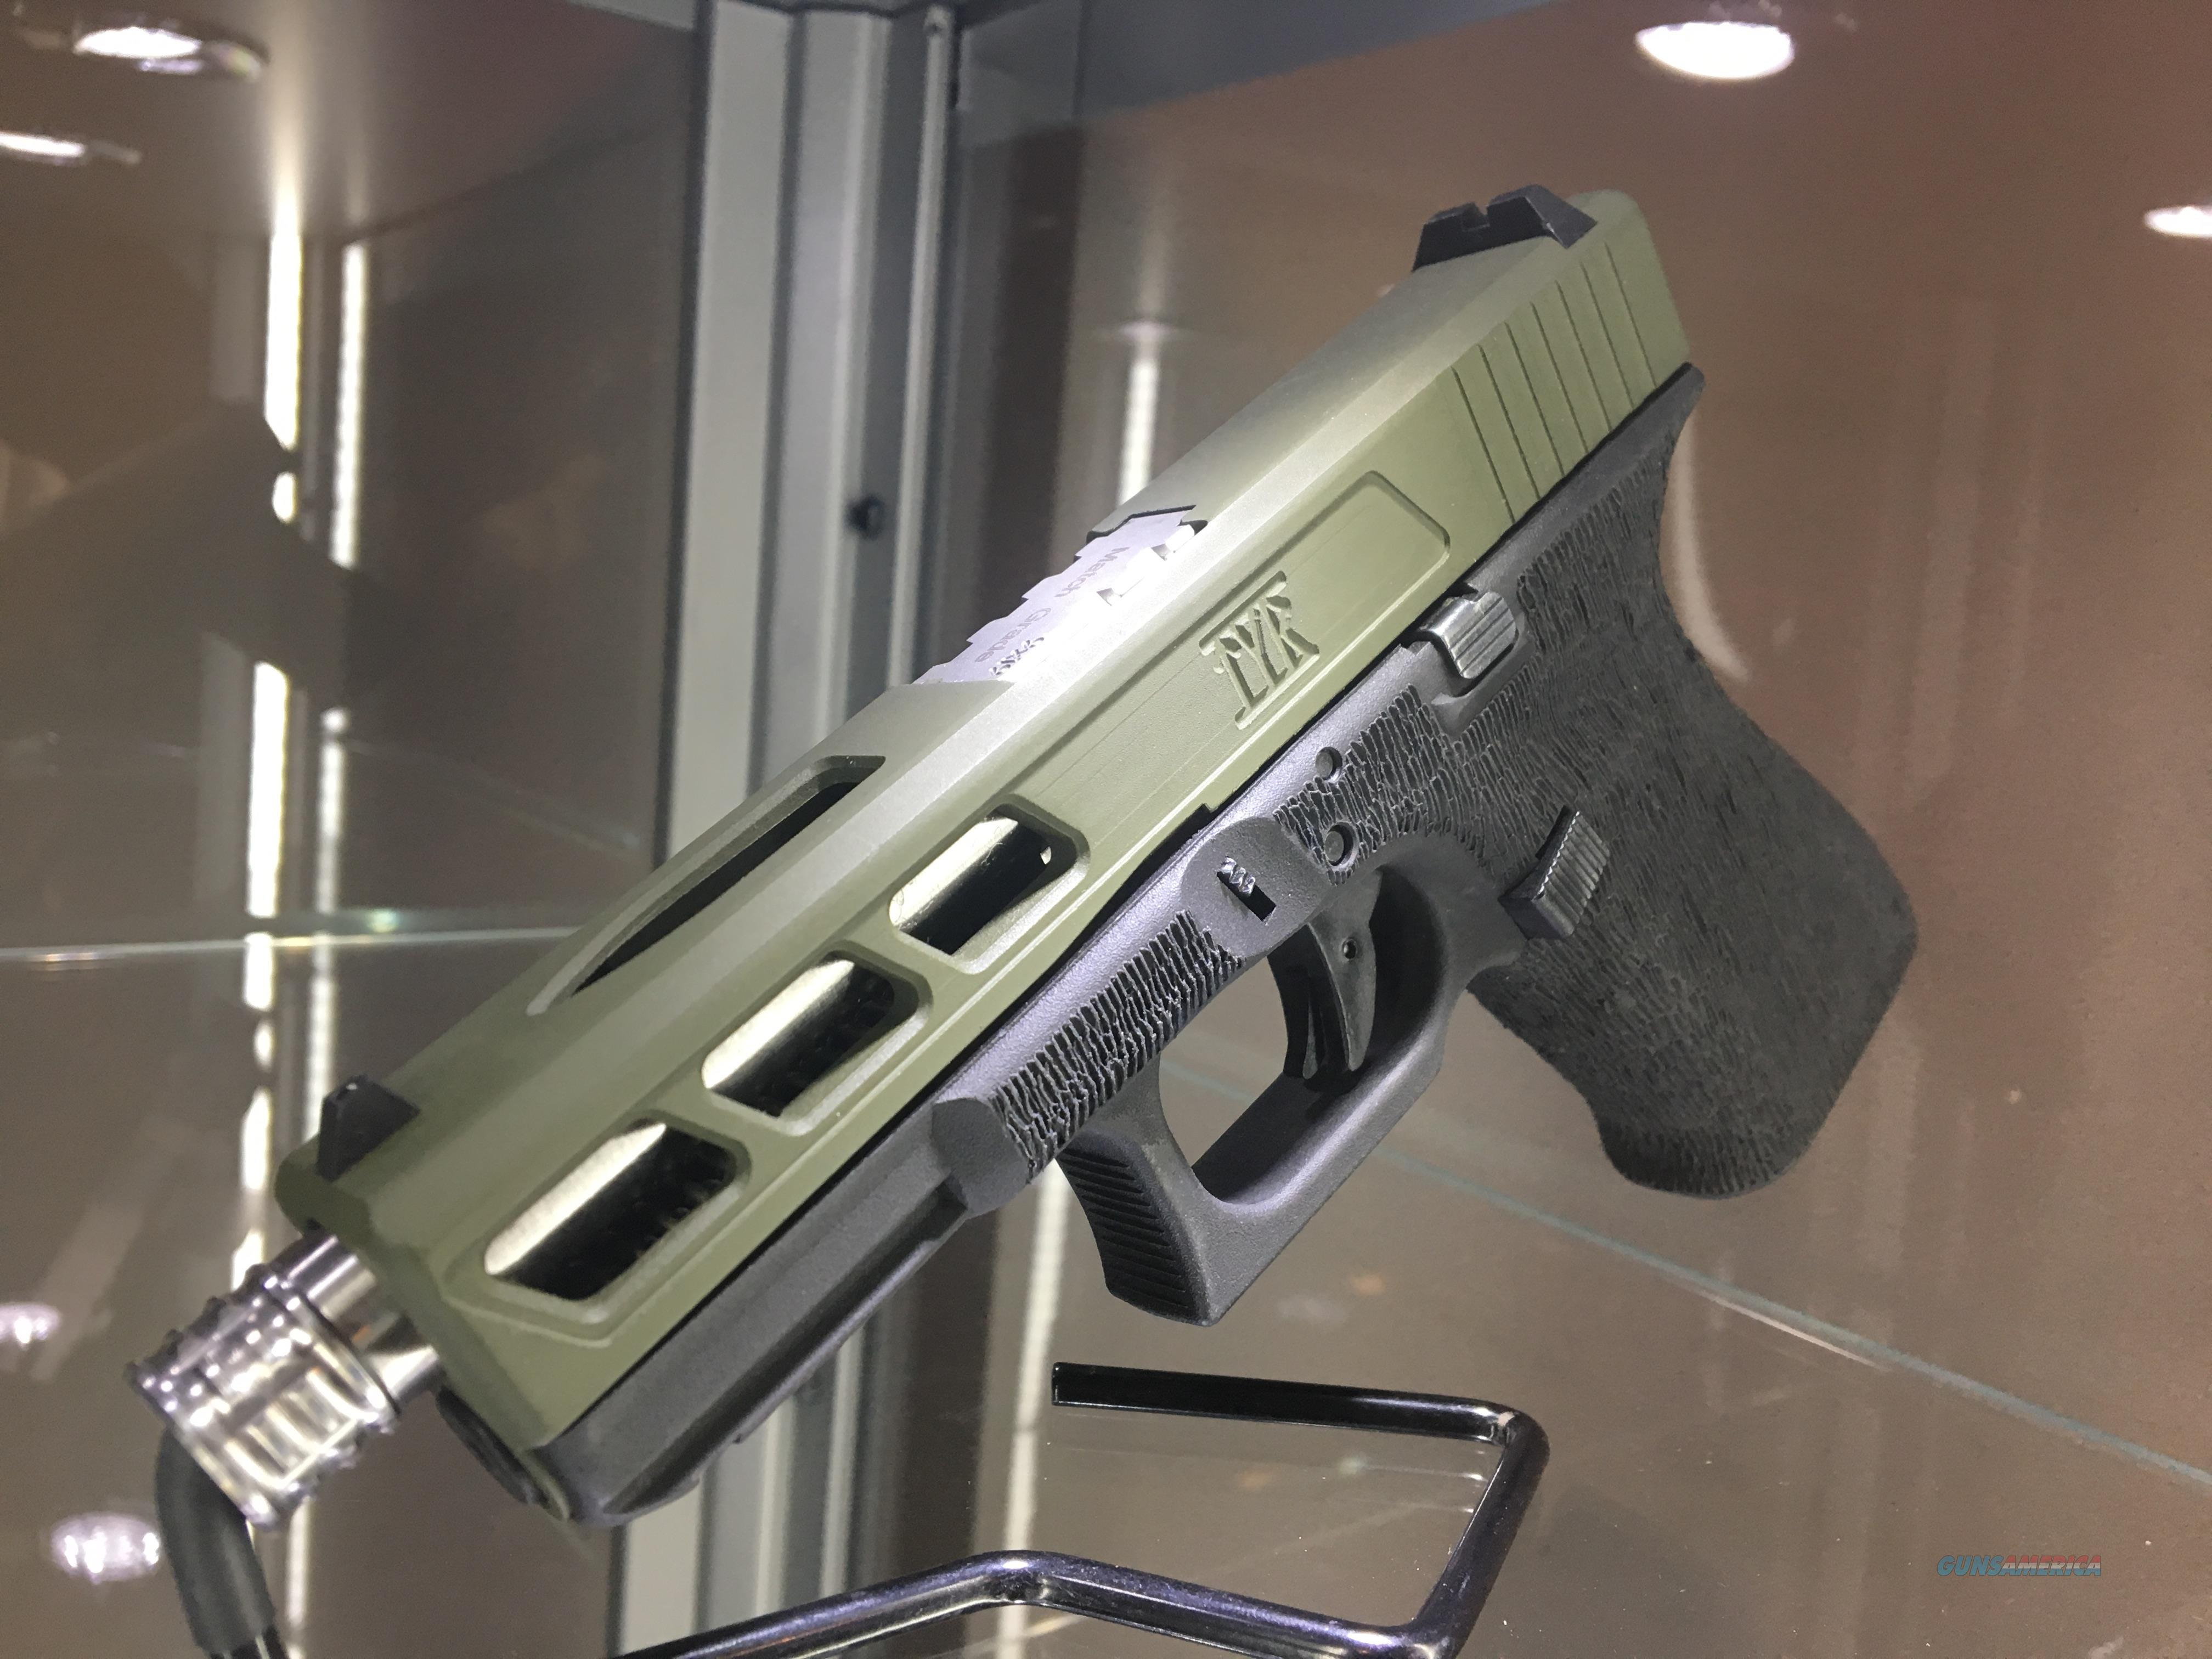 TYR Defense Industries Custom Glock 19  Guns > Pistols > Glock Pistols > 19